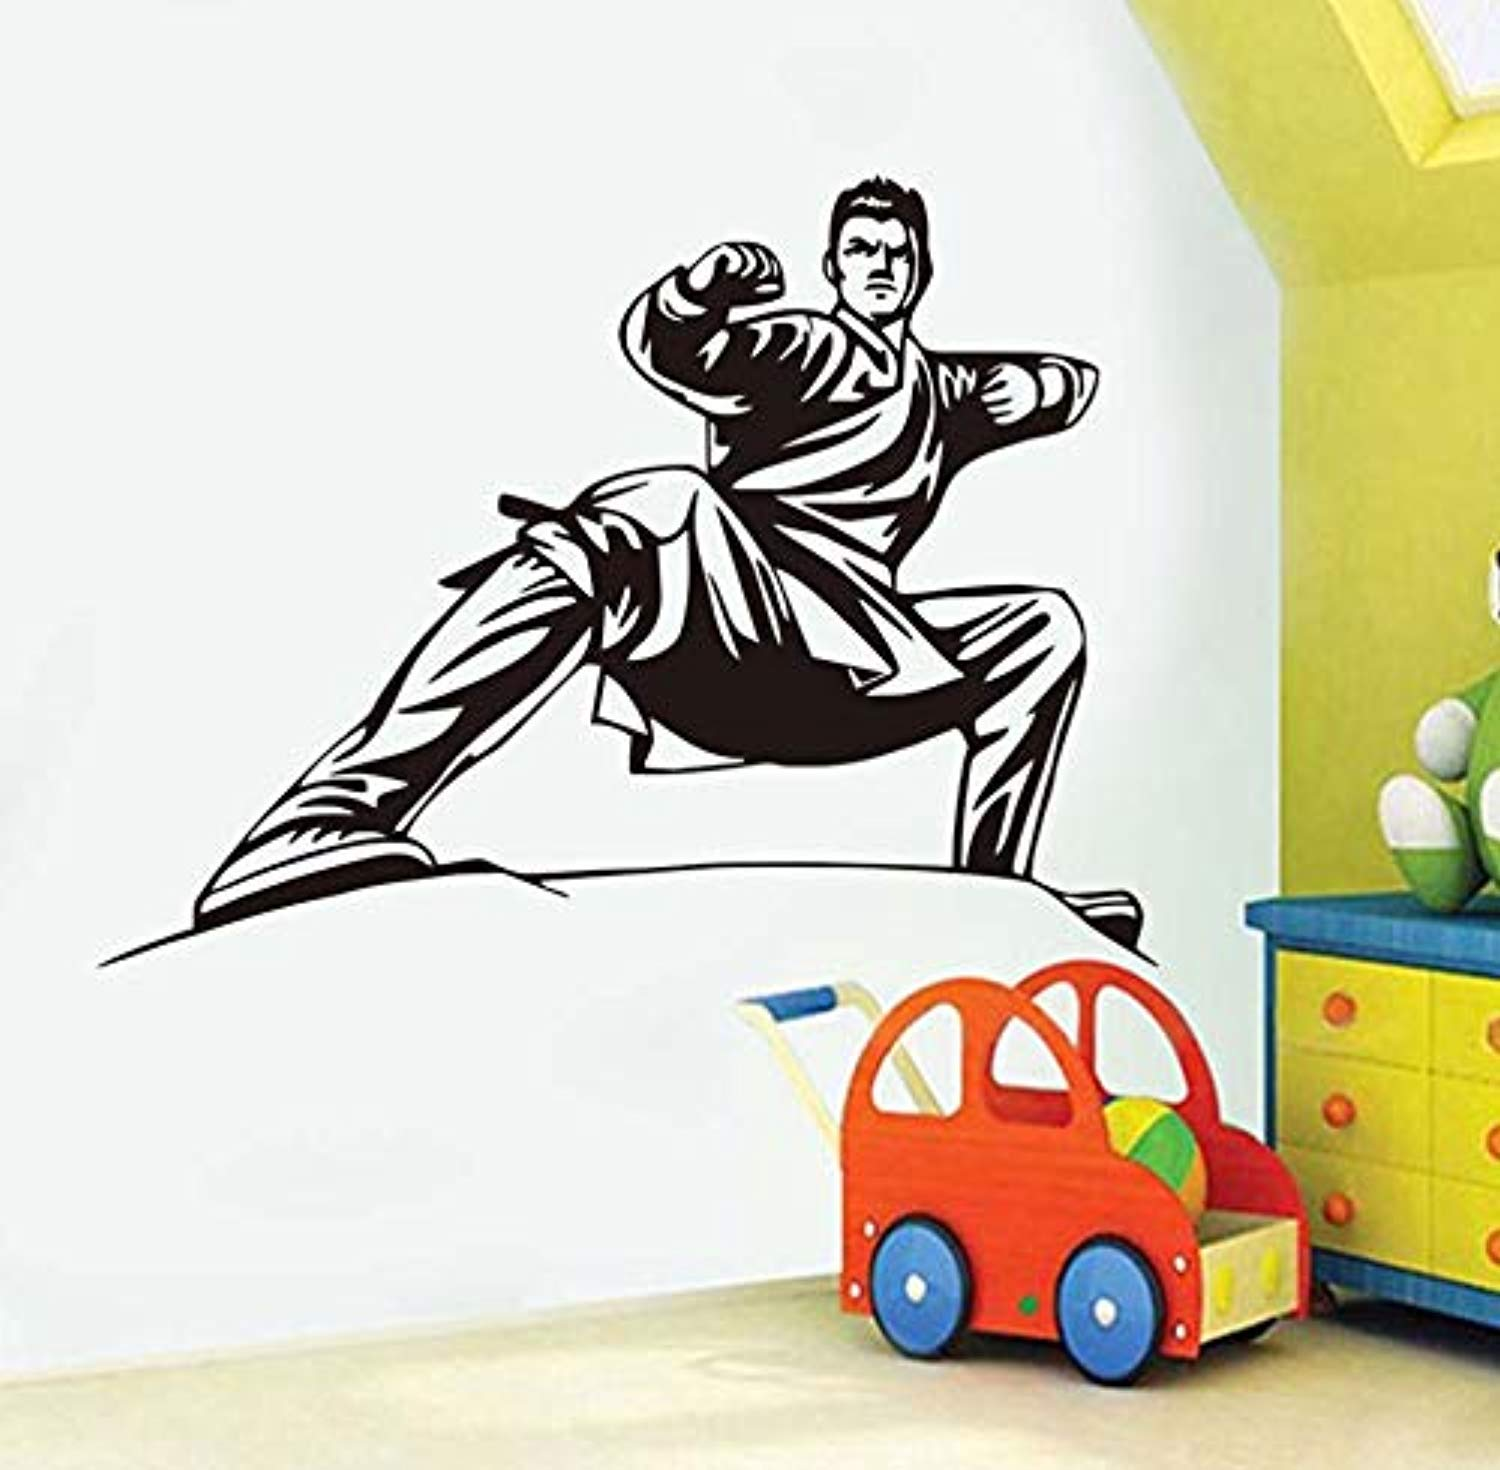 Removable Home Stickerized Colors Male Handsome Karate Stance for Kids Bedroom Headboard Decals Wall Decals Decor Vinyl Sticker Q17122 by Profit Decal